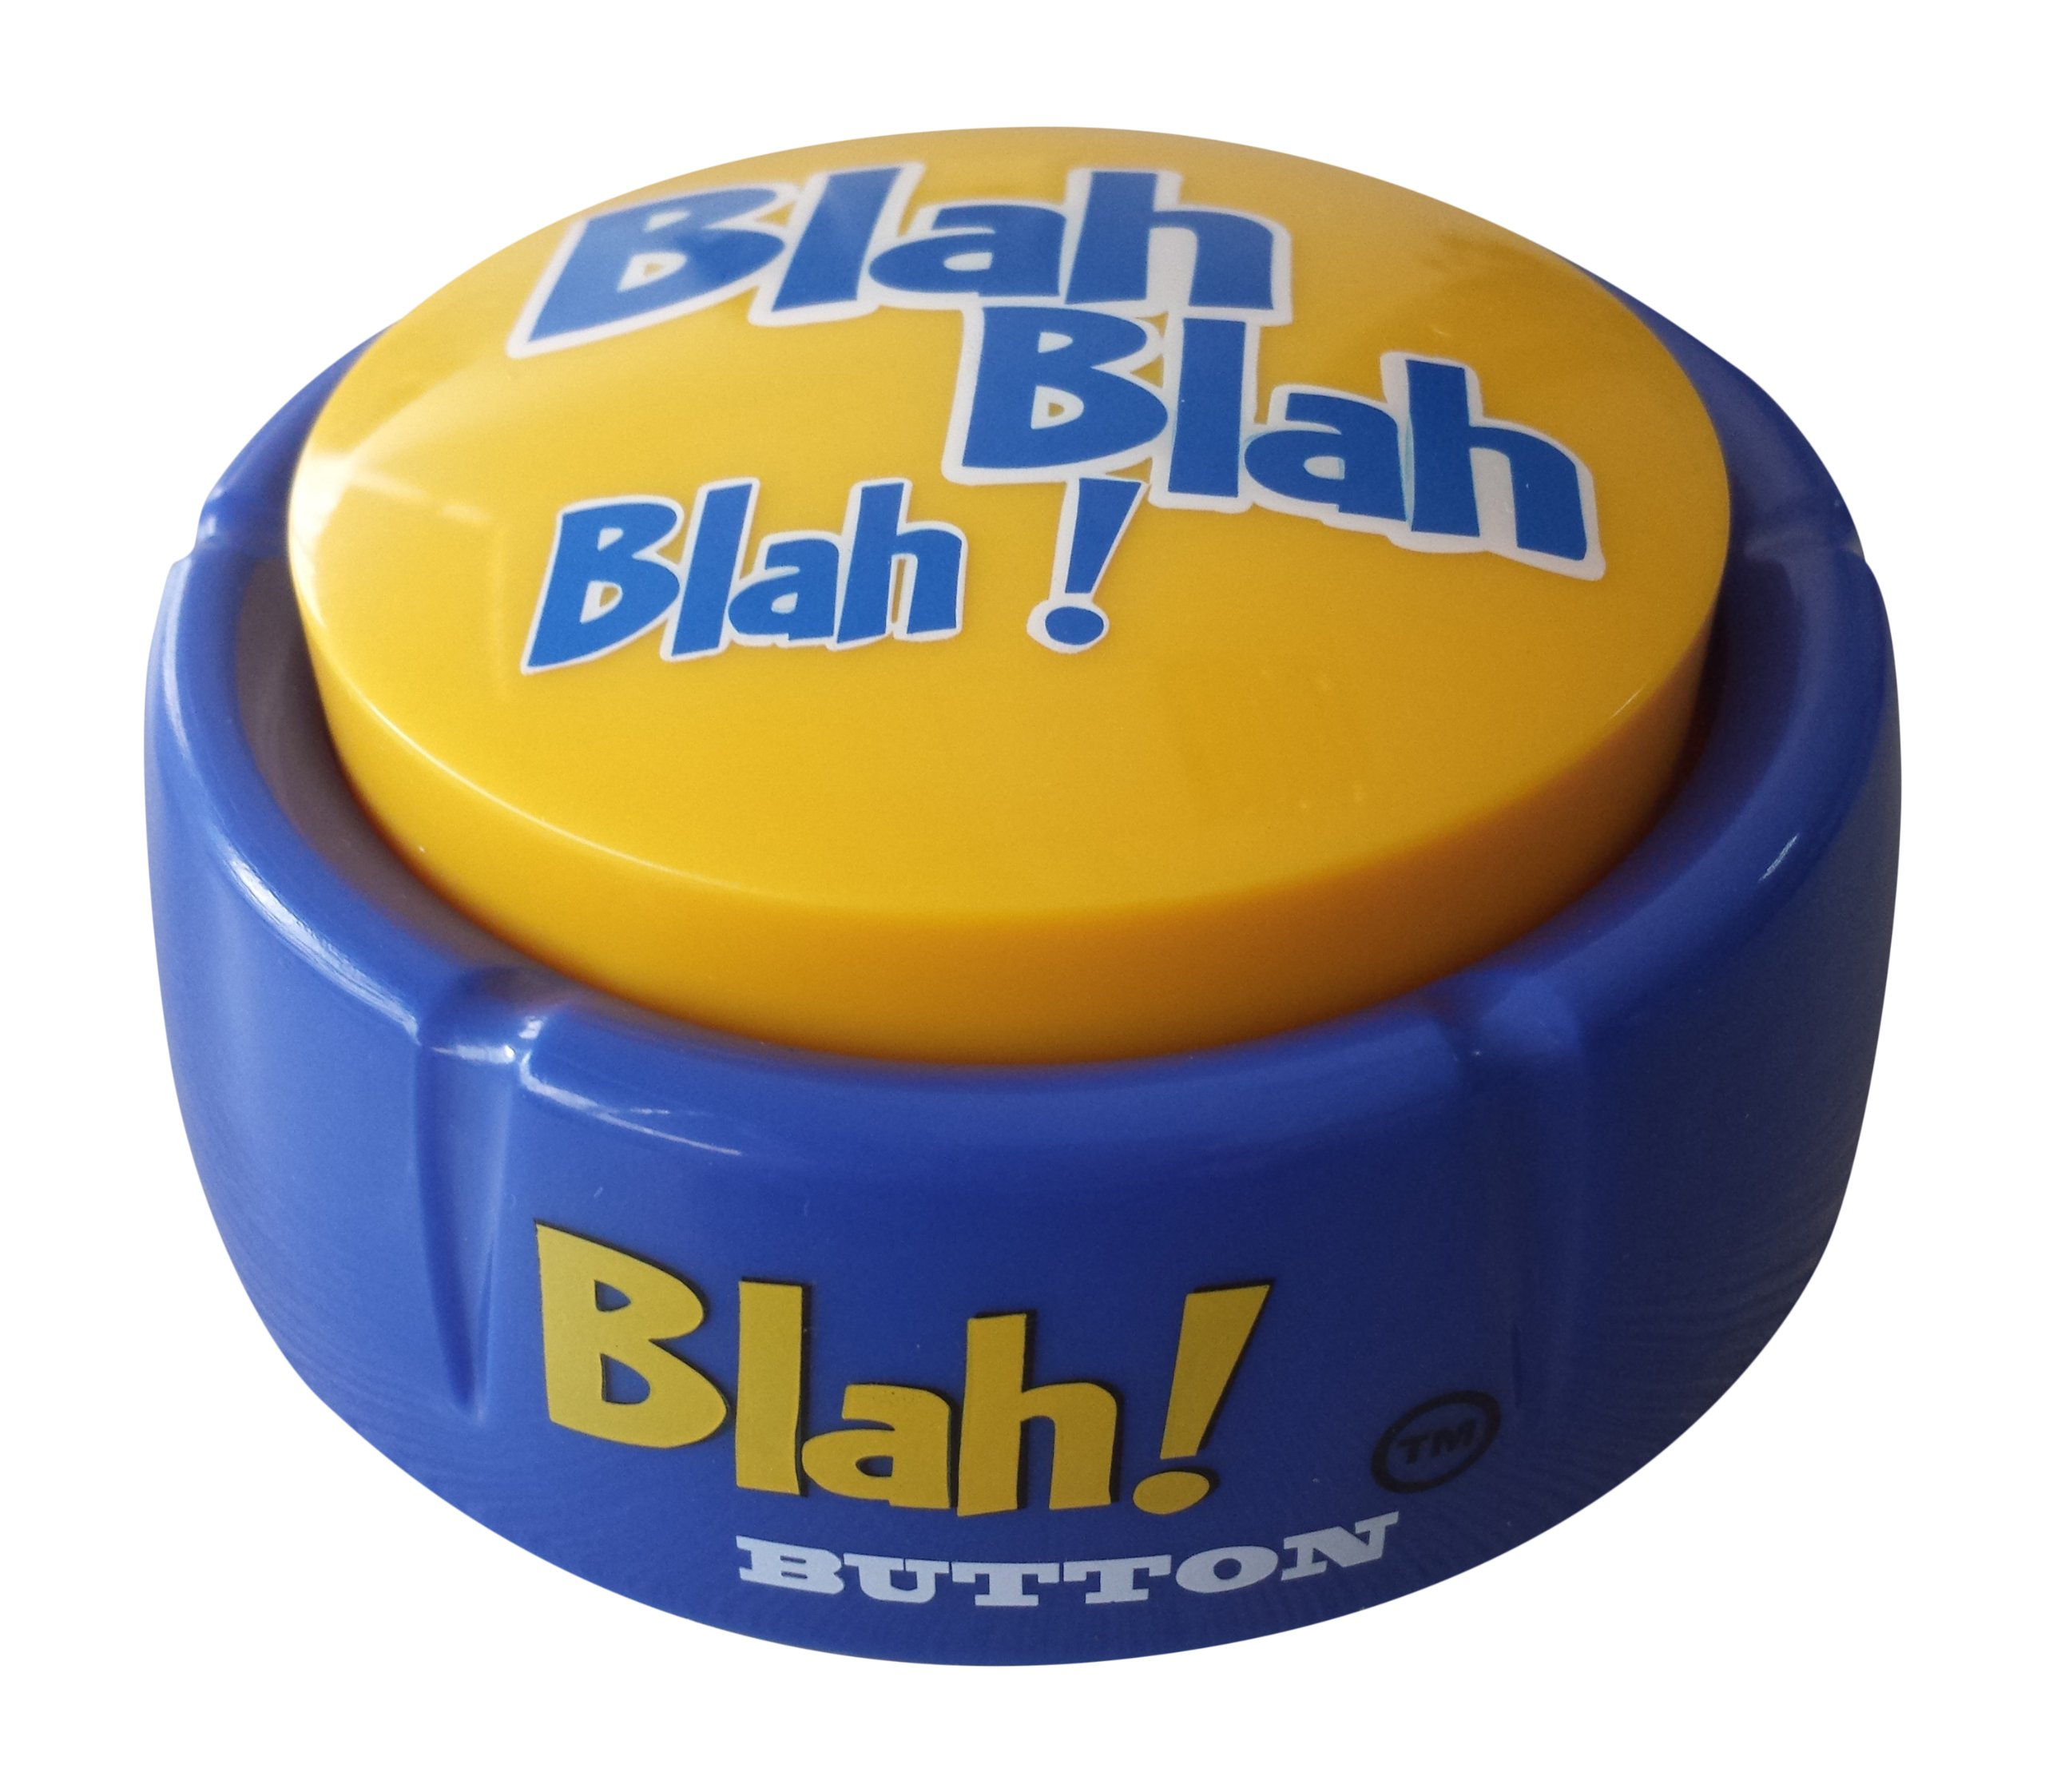 Talkie Toys Products Blah Button -Talking Button Features Hilarious Blah Sayings - Funny Gifts for Calling Out Political Blah Blah, Fake News and More